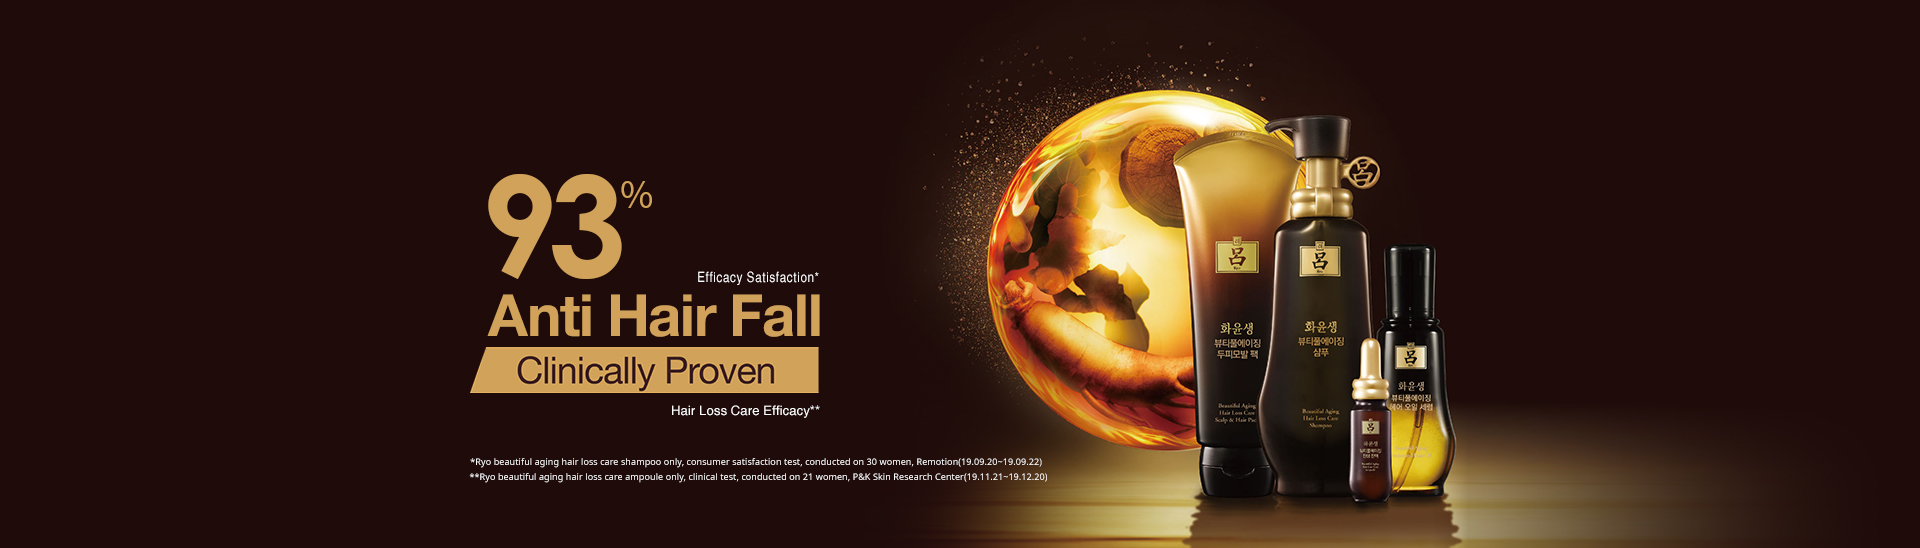 93% Anti Hair Fall Clinically Proven